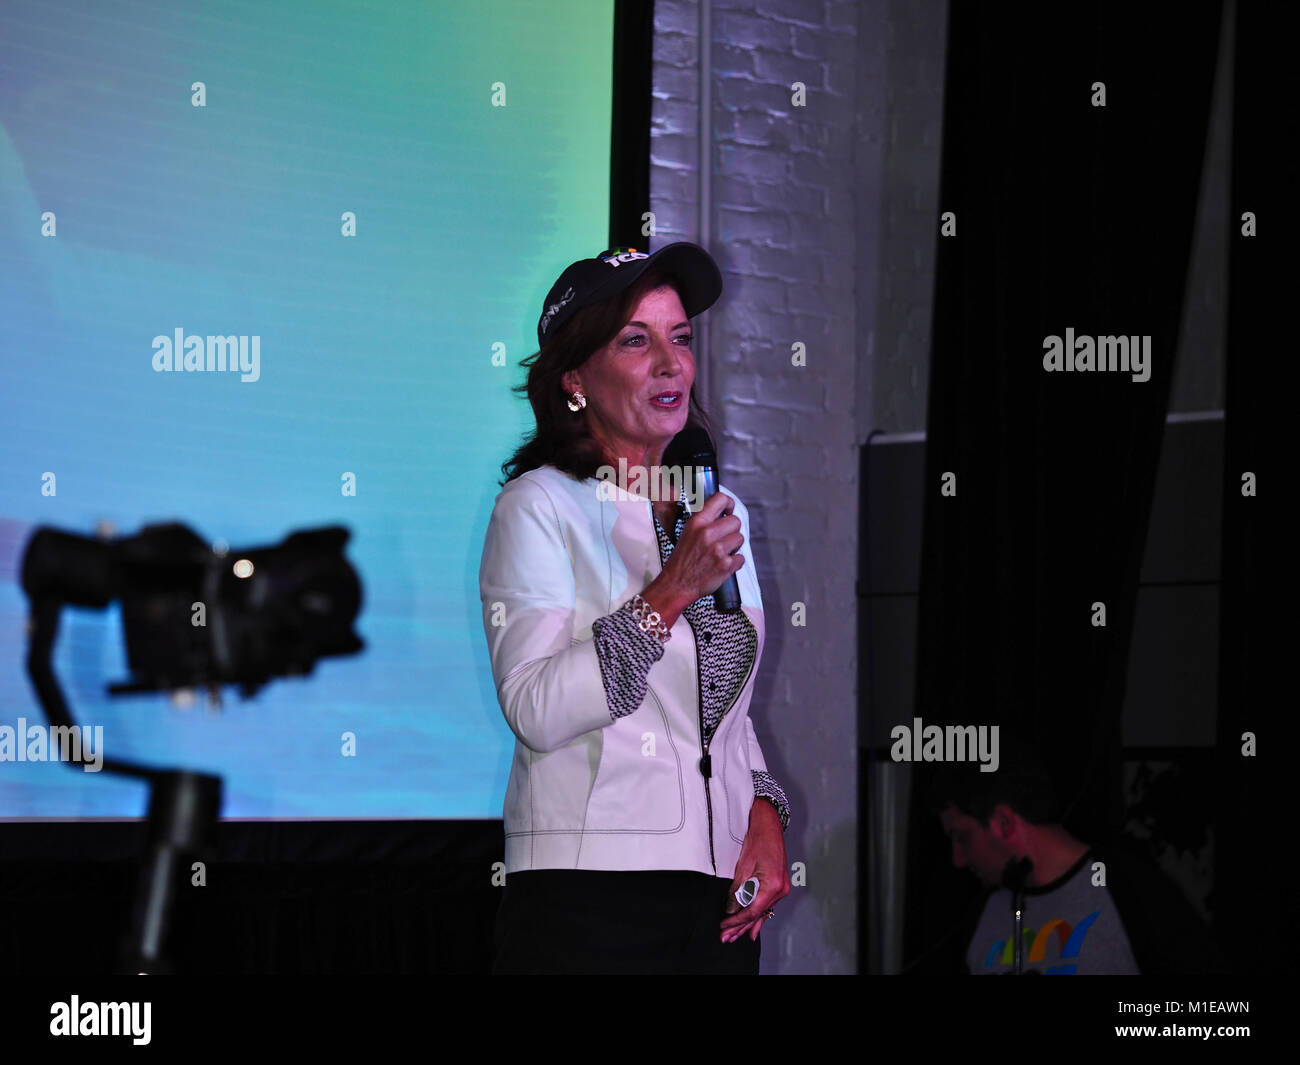 "Kathleen Courtney ""Kathy"" Hochul, Lieutenant Governor of the State of New York, speaking at Topcoder Open 2017 finals. Stock Photo"